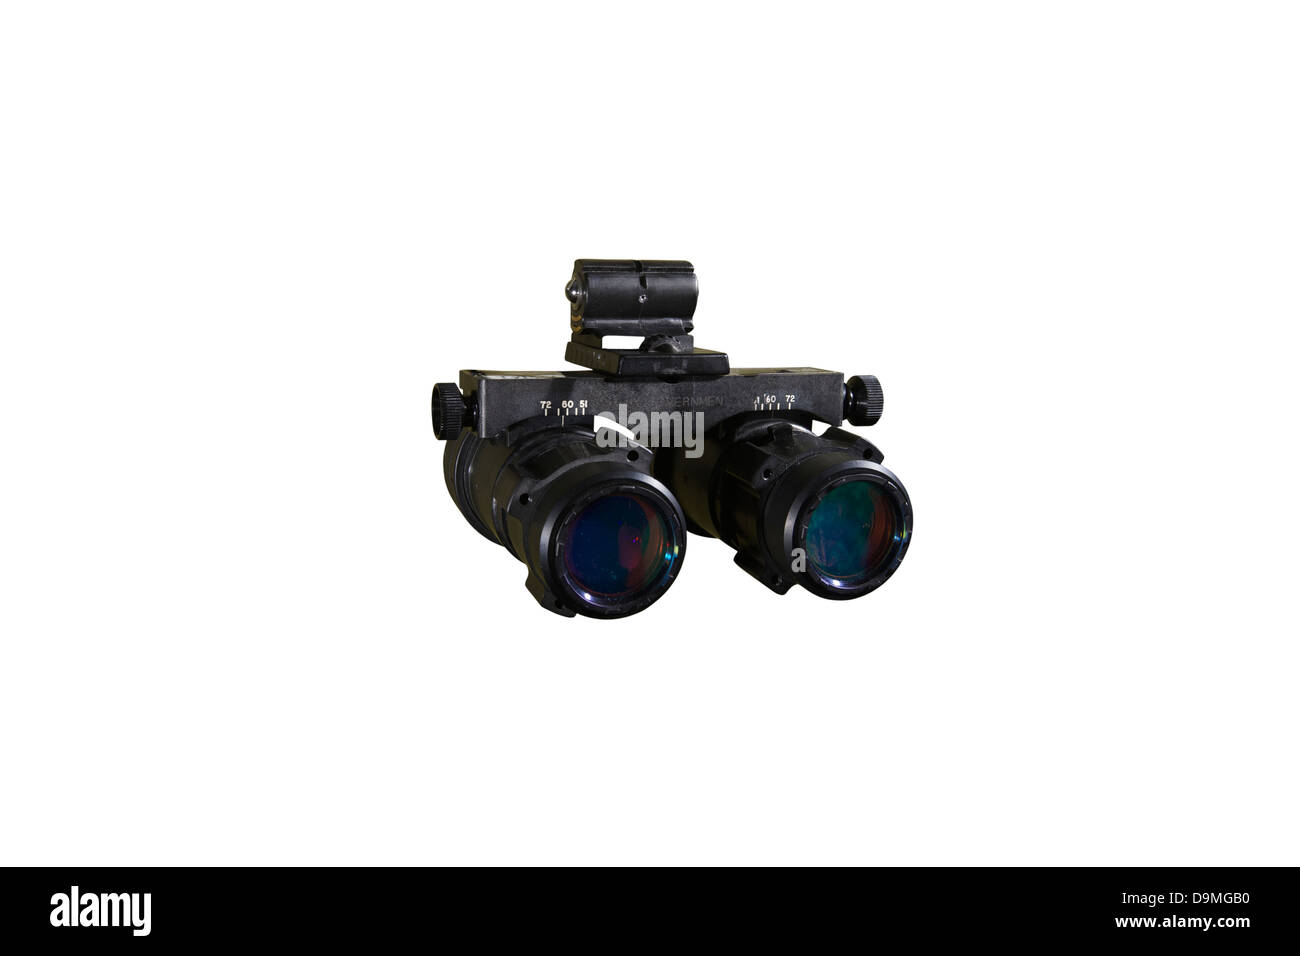 AN/AVS-6 night vision goggles used by the military Stock Photo